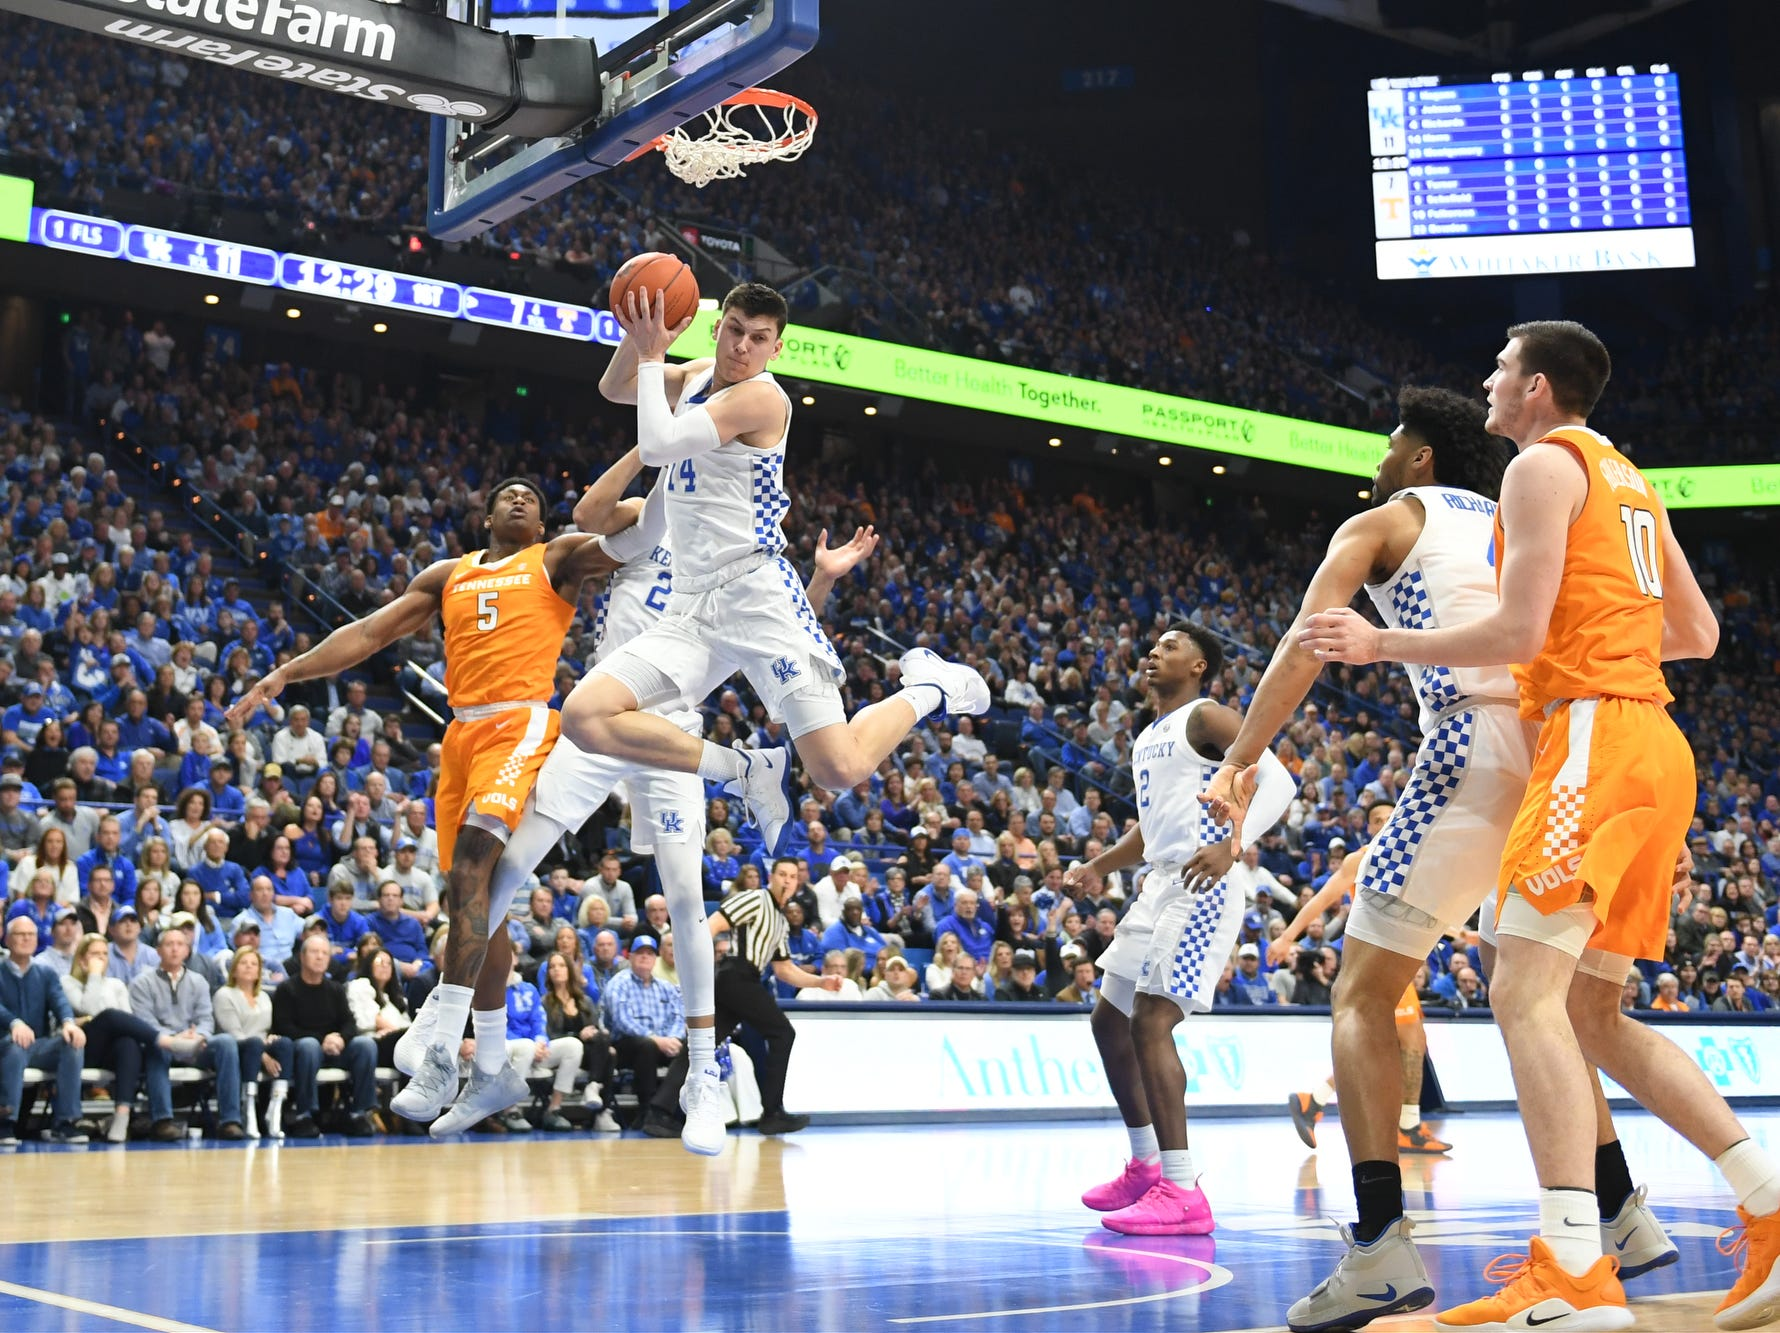 UK G Tyler Herro grabs a rebound during the University of Kentucky mens basketball game against Tennessee at Rupp Arena in Lexington, Kentucky on Saturday, February 16, 2019.